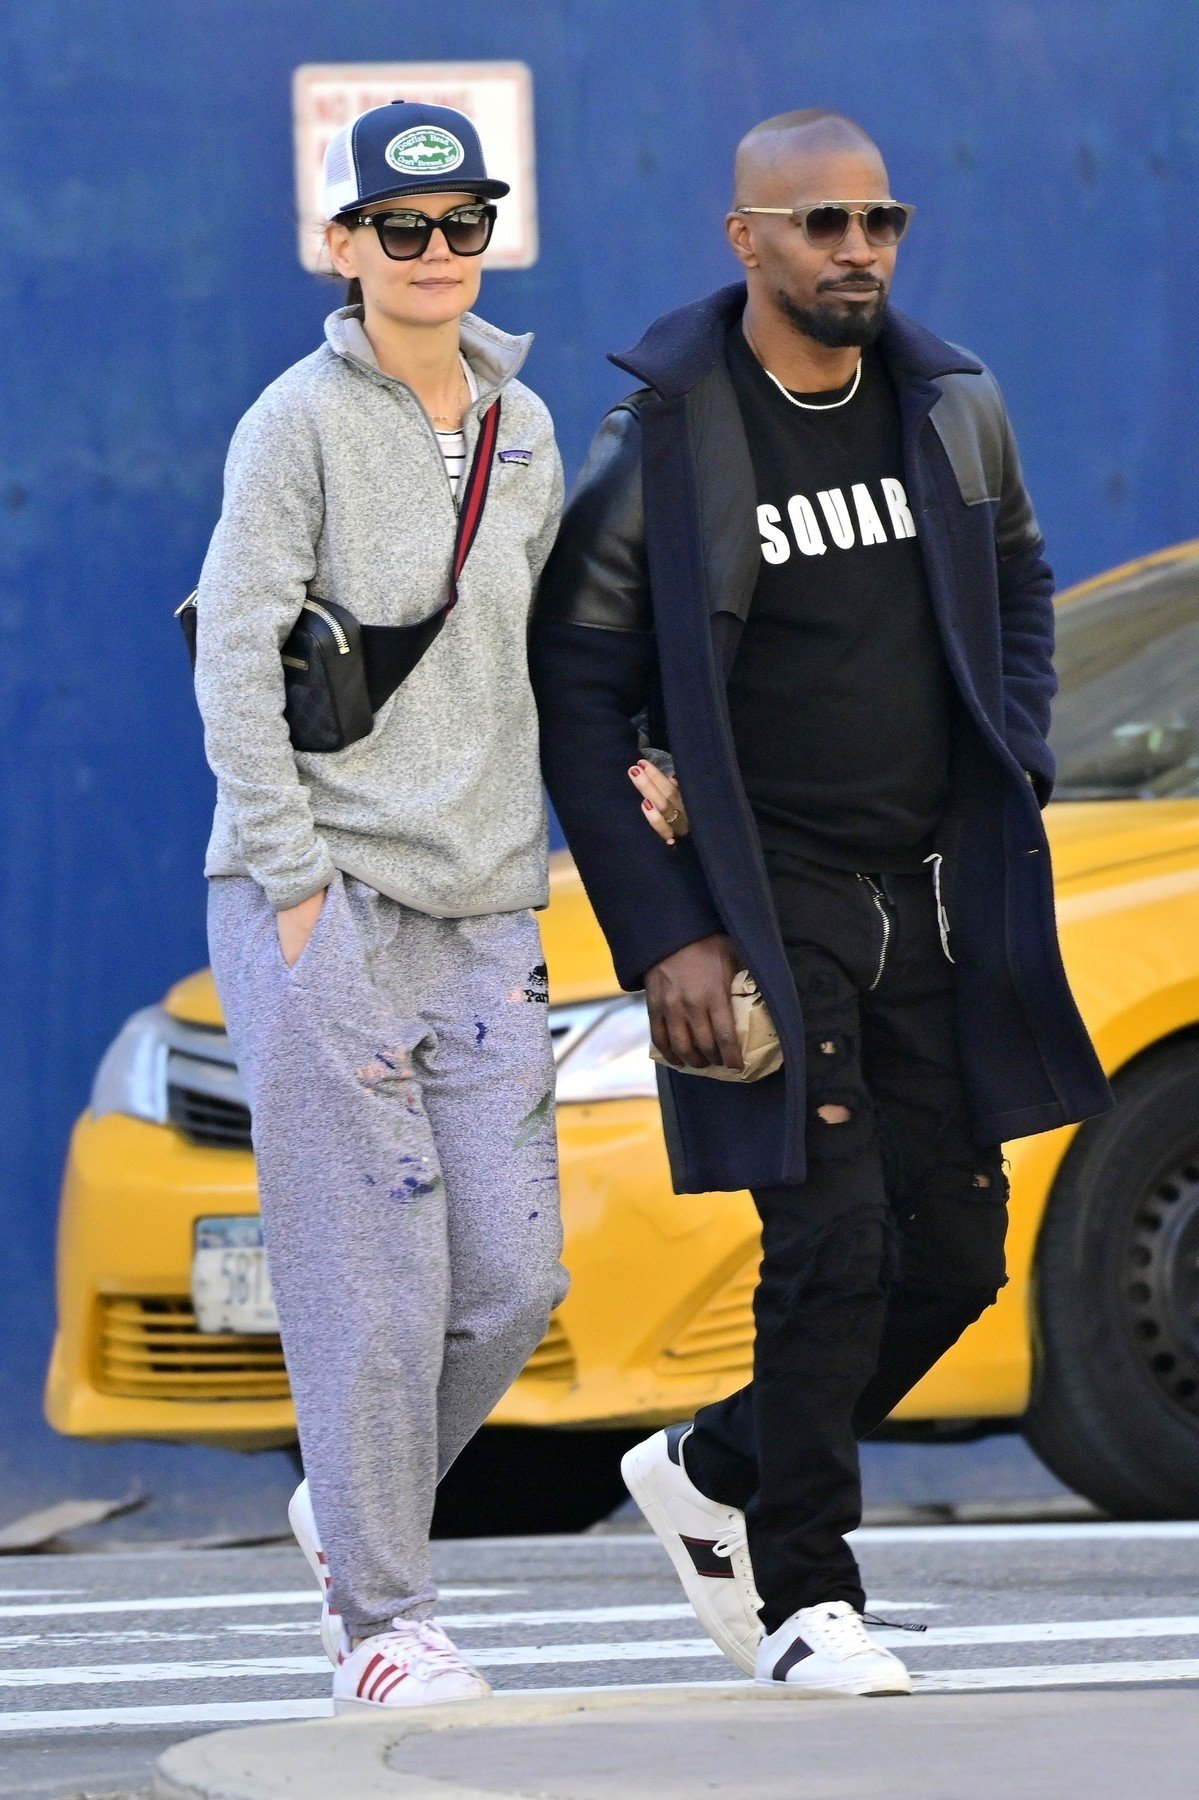 ** RIGHTS: WORLDWIDE EXCEPT IN FRANCE, GERMANY, POLAND ** New York, NY  - *EXCLUSIVE*  - Katie Holmes and Jamie Foxx show their love for each other as they hold hands after brunch. The duo are seen heading to Katie's apartment.  Pictured: Jamie Foxx, Katie Holmes  BACKGRID USA 16 APRIL 2019, Image: 426442959, License: Rights-managed, Restrictions: , Model Release: no, Credit line: Profimedia, Backgrid USA